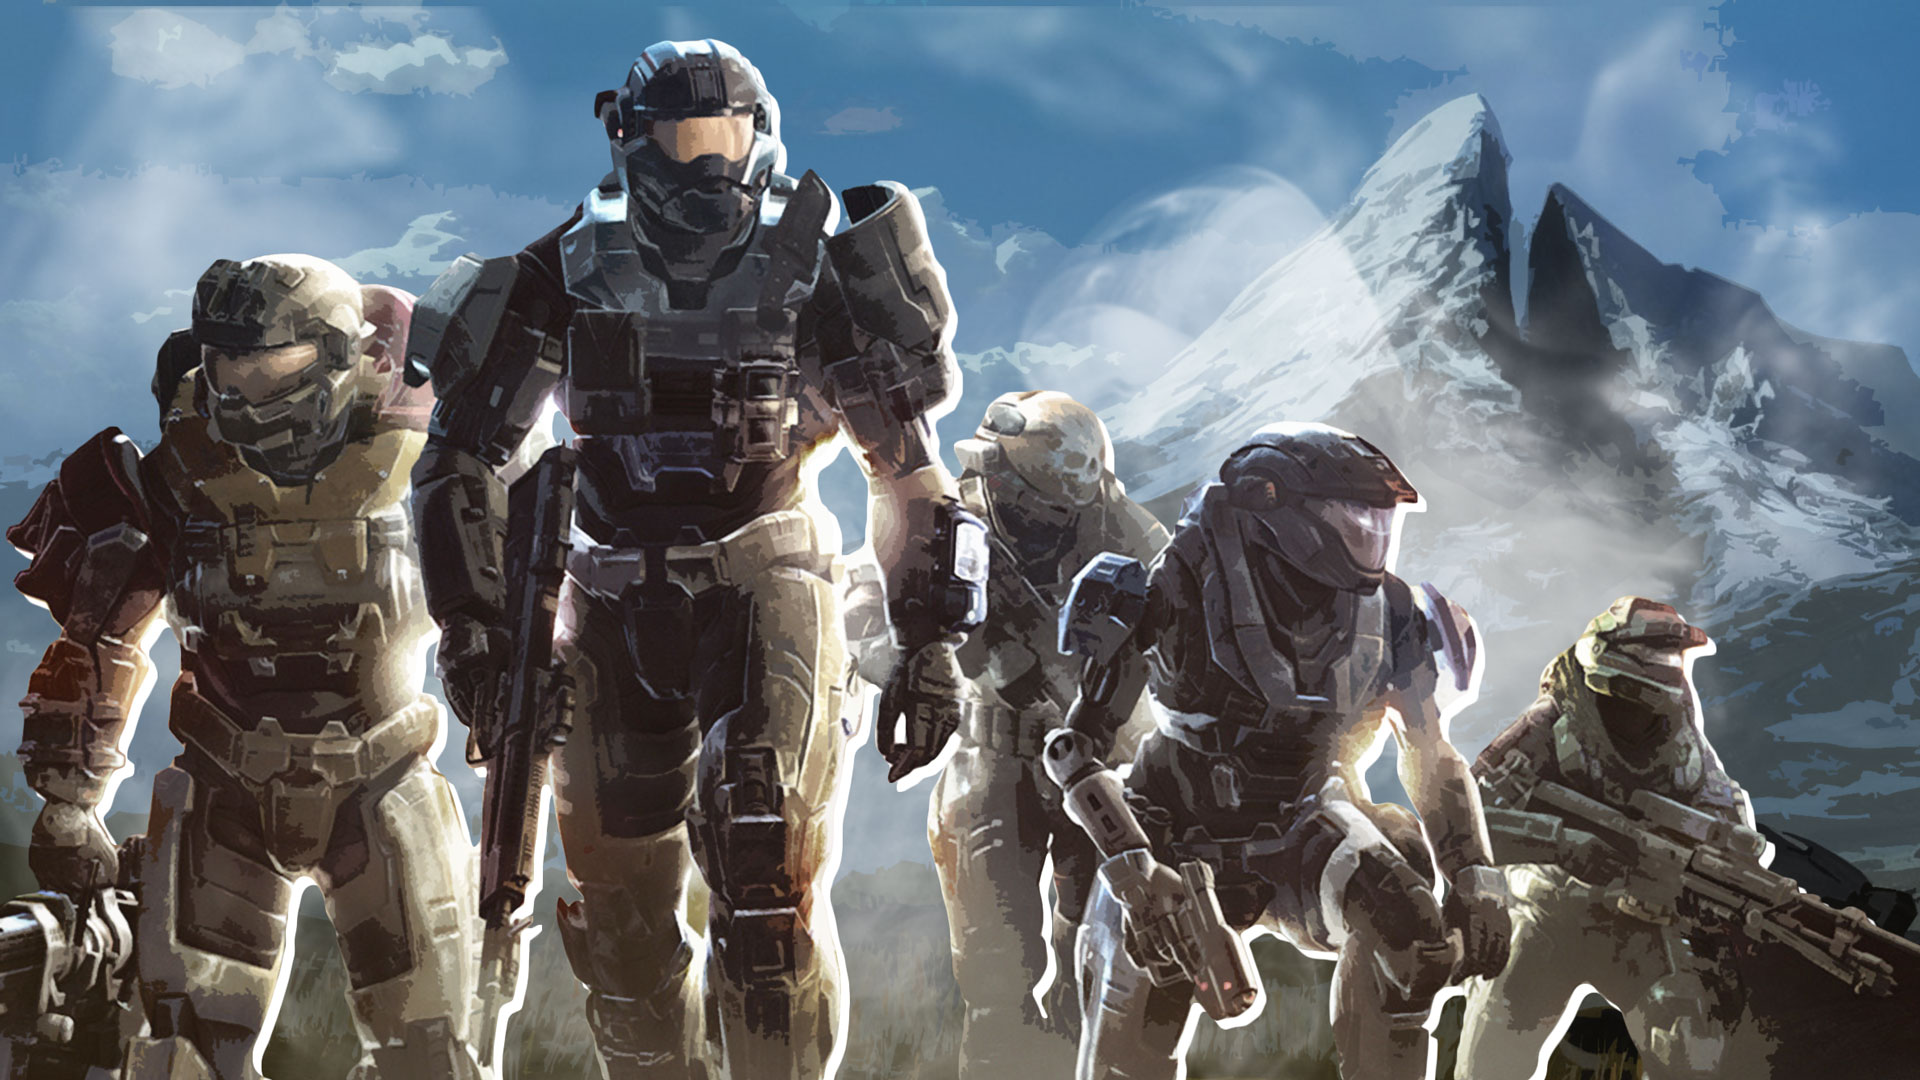 Halo is back in the spotlight with over 5 million players this December